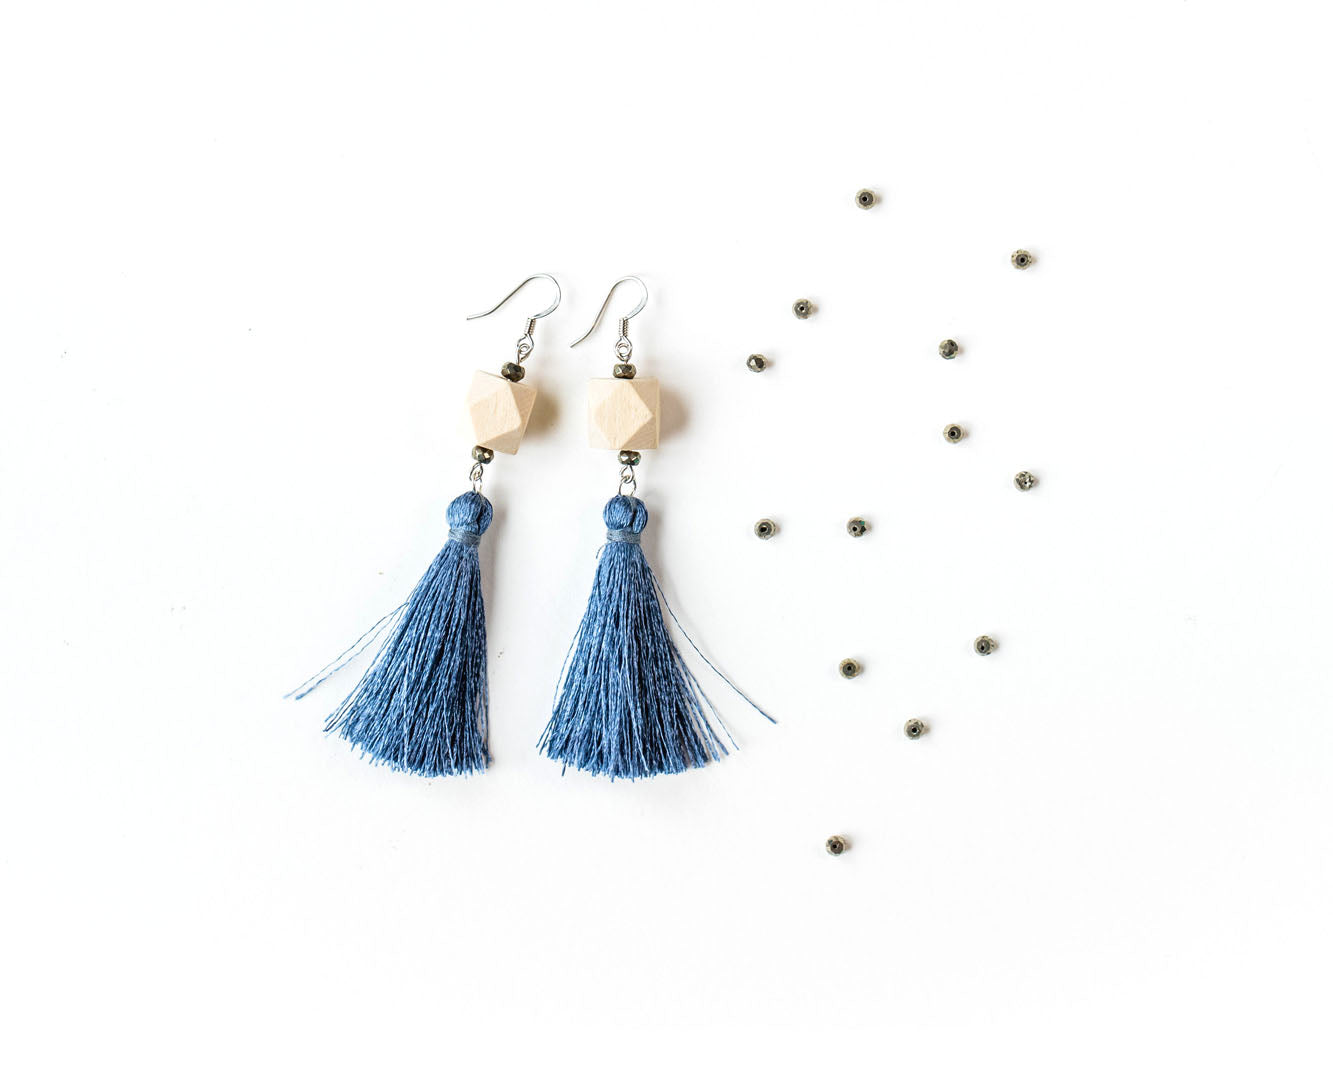 Pyrite Tassel Earrings with Nickel-Free Surgical Steel Silver - Tittup Unique Aromatherapy & Jewellery